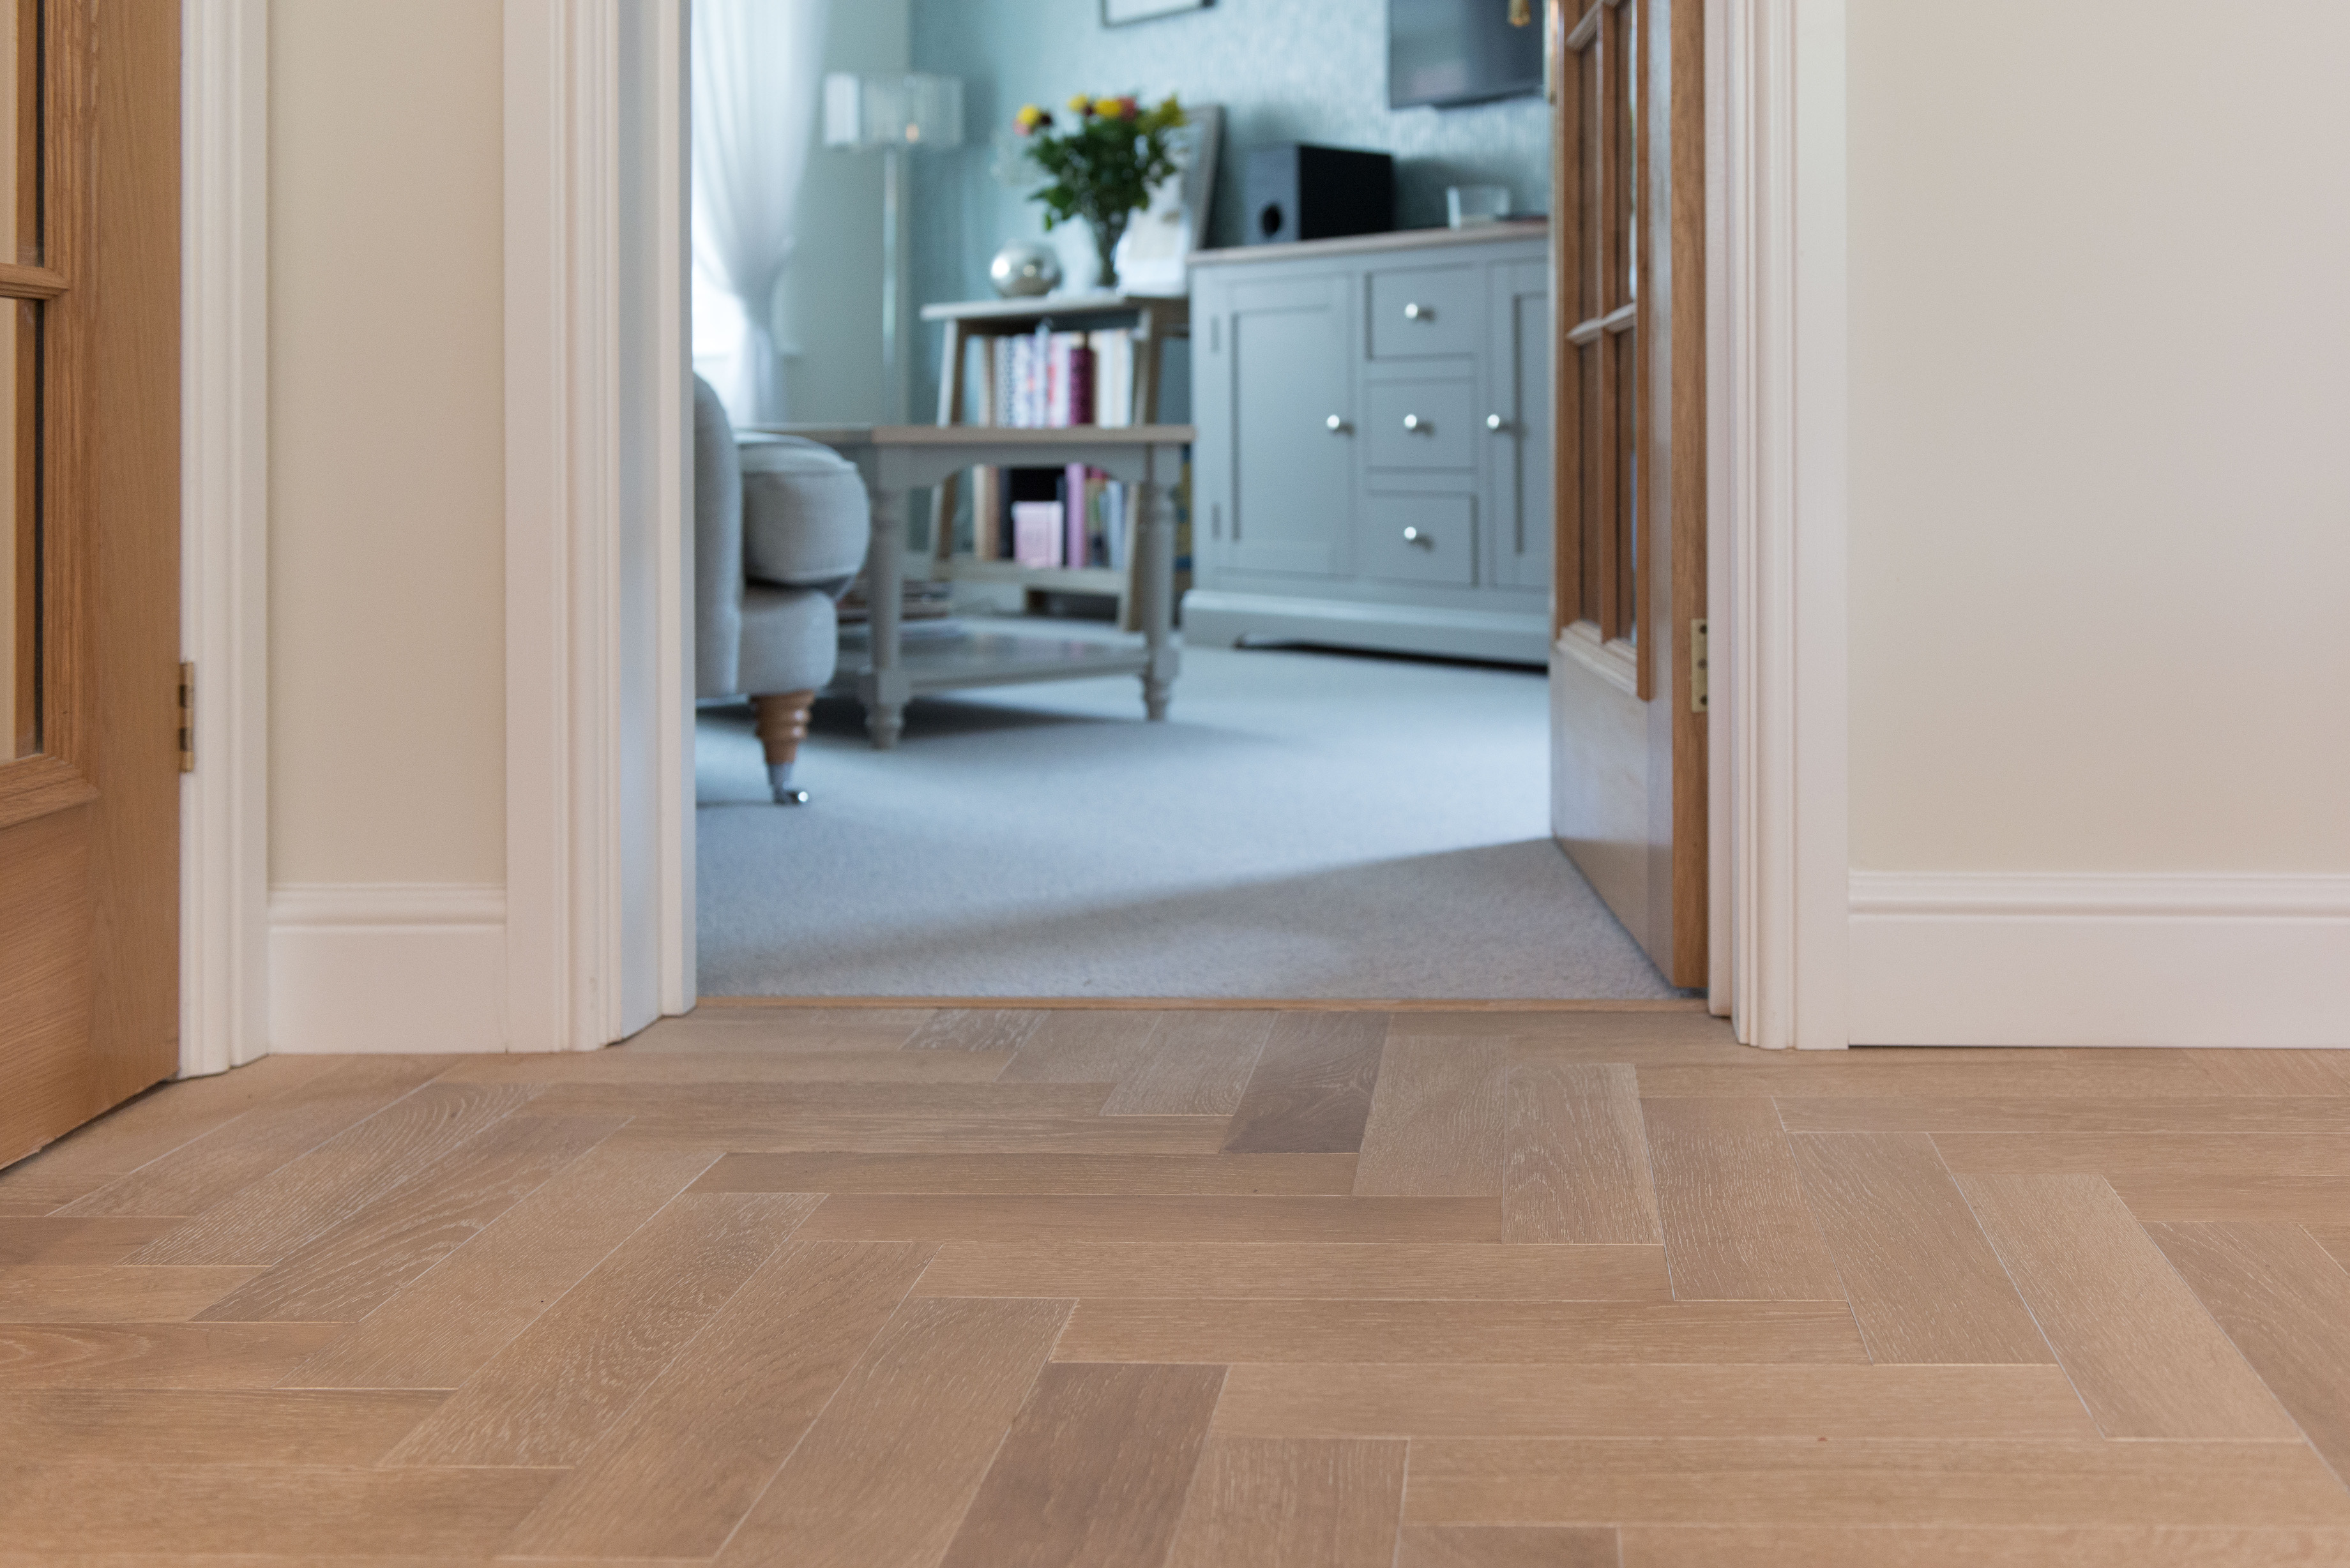 V4 Zig Zag Collection Parquet Flooring to family space in Buckingham